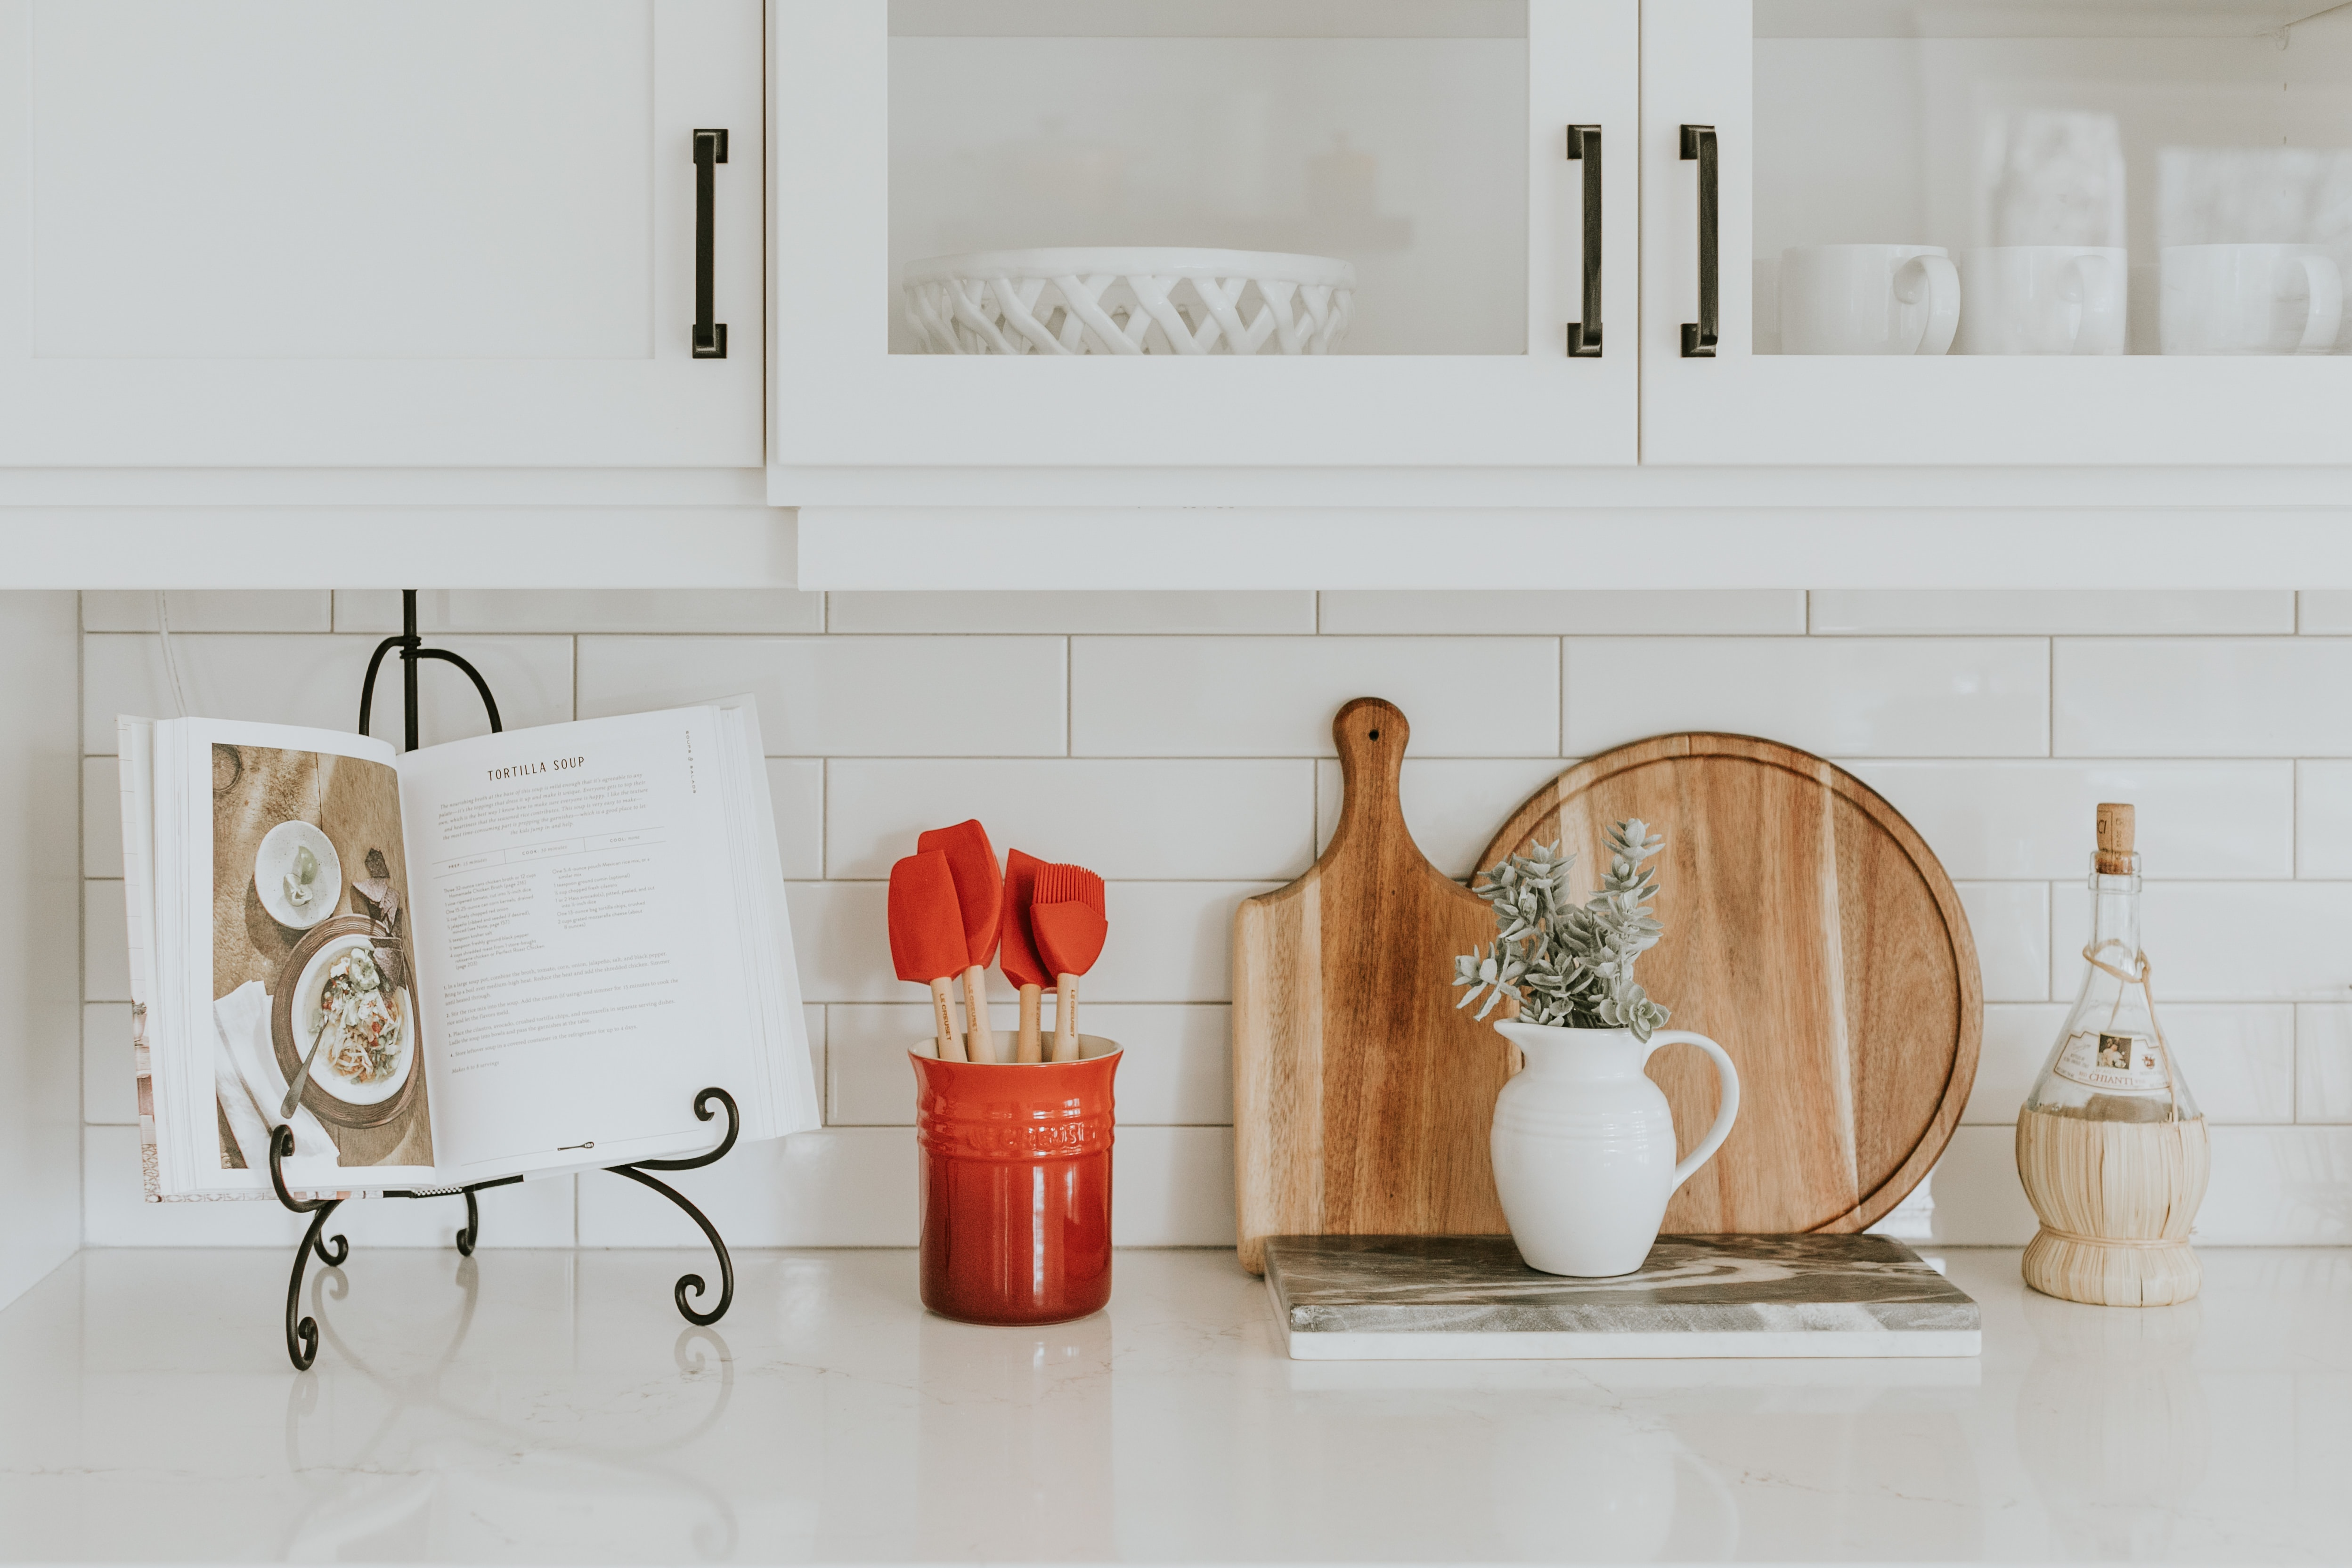 Kitchen Decoration App - How to Download for Free